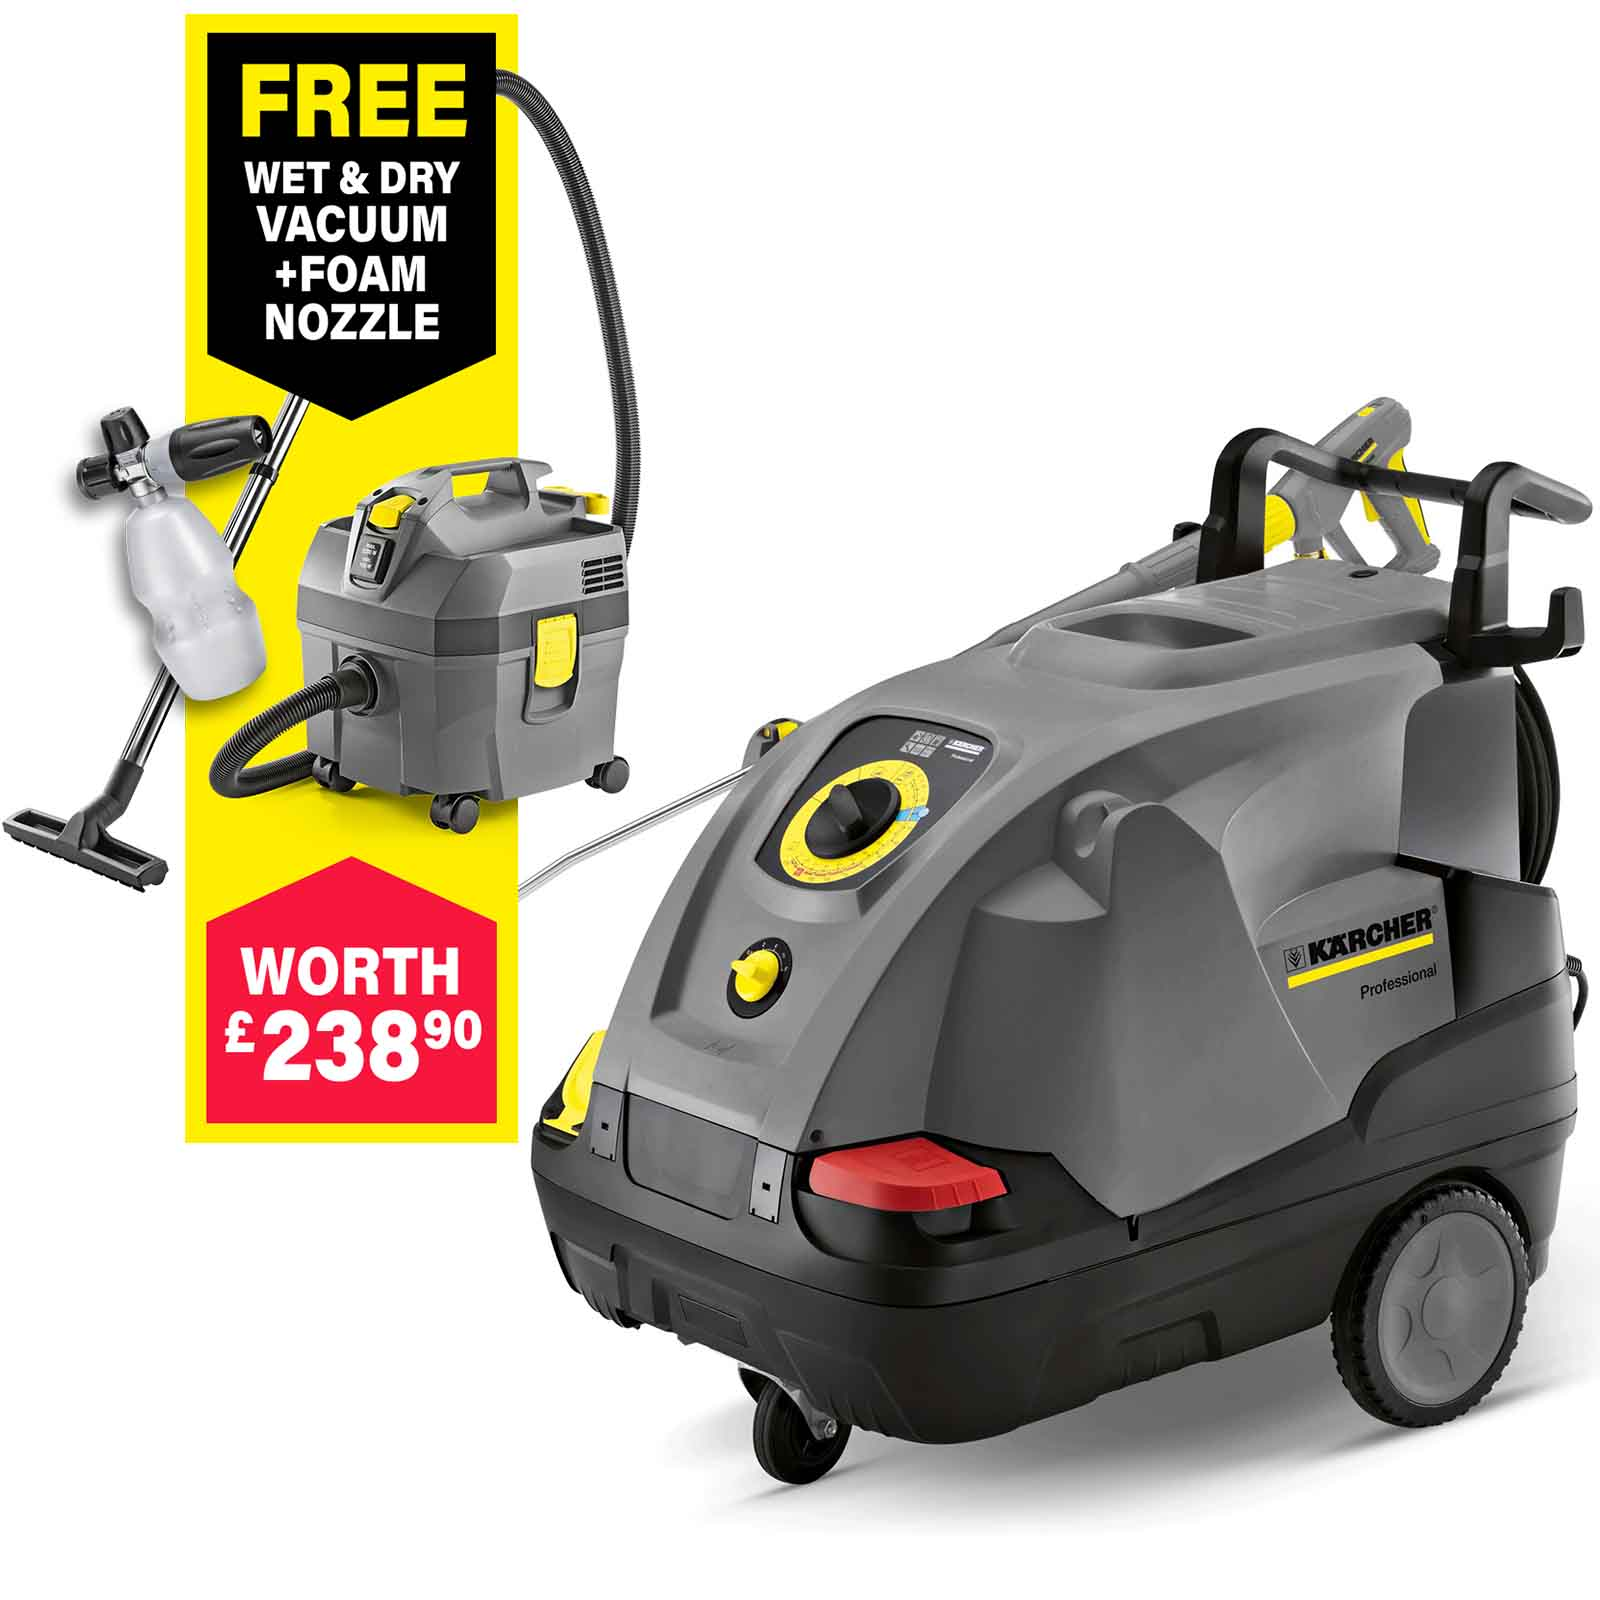 medium resolution of karcher hds 6 12 c professional hot water steam pressure washer 120 bar free foam nozzle worth 82 95